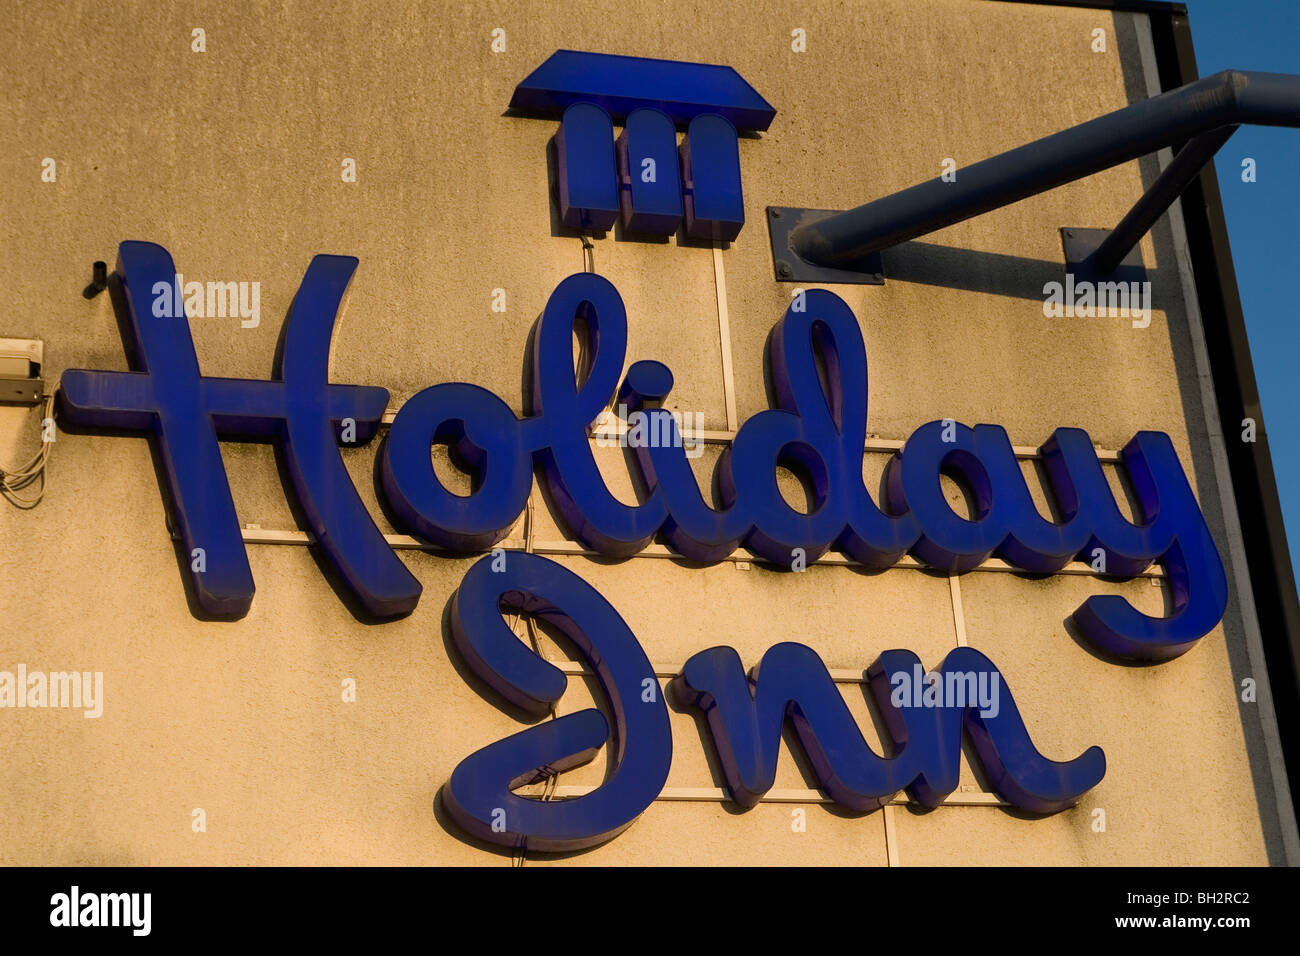 Holiday Inn sign - Stock Image